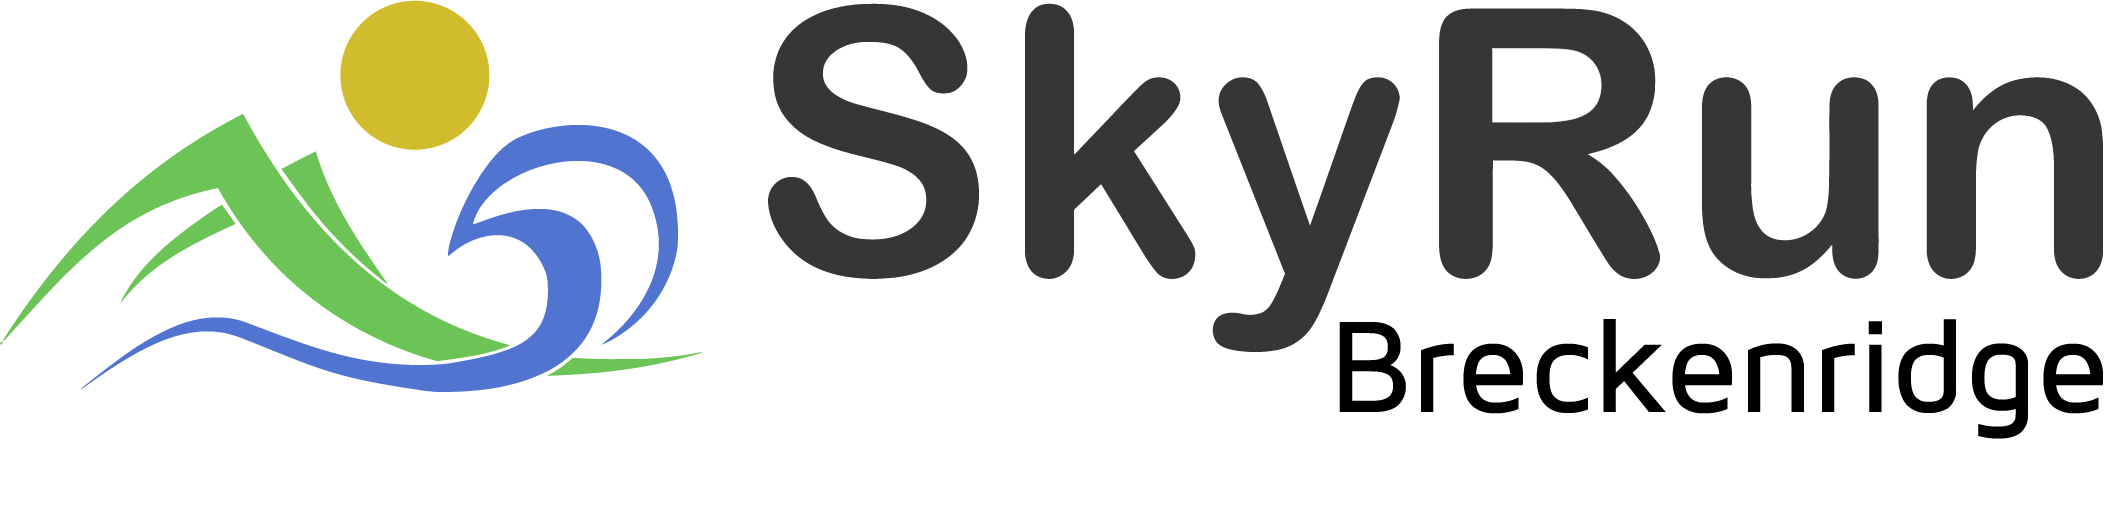 Breckenridge Lodging | SkyRun | Condos, Townhomes, Private Homes